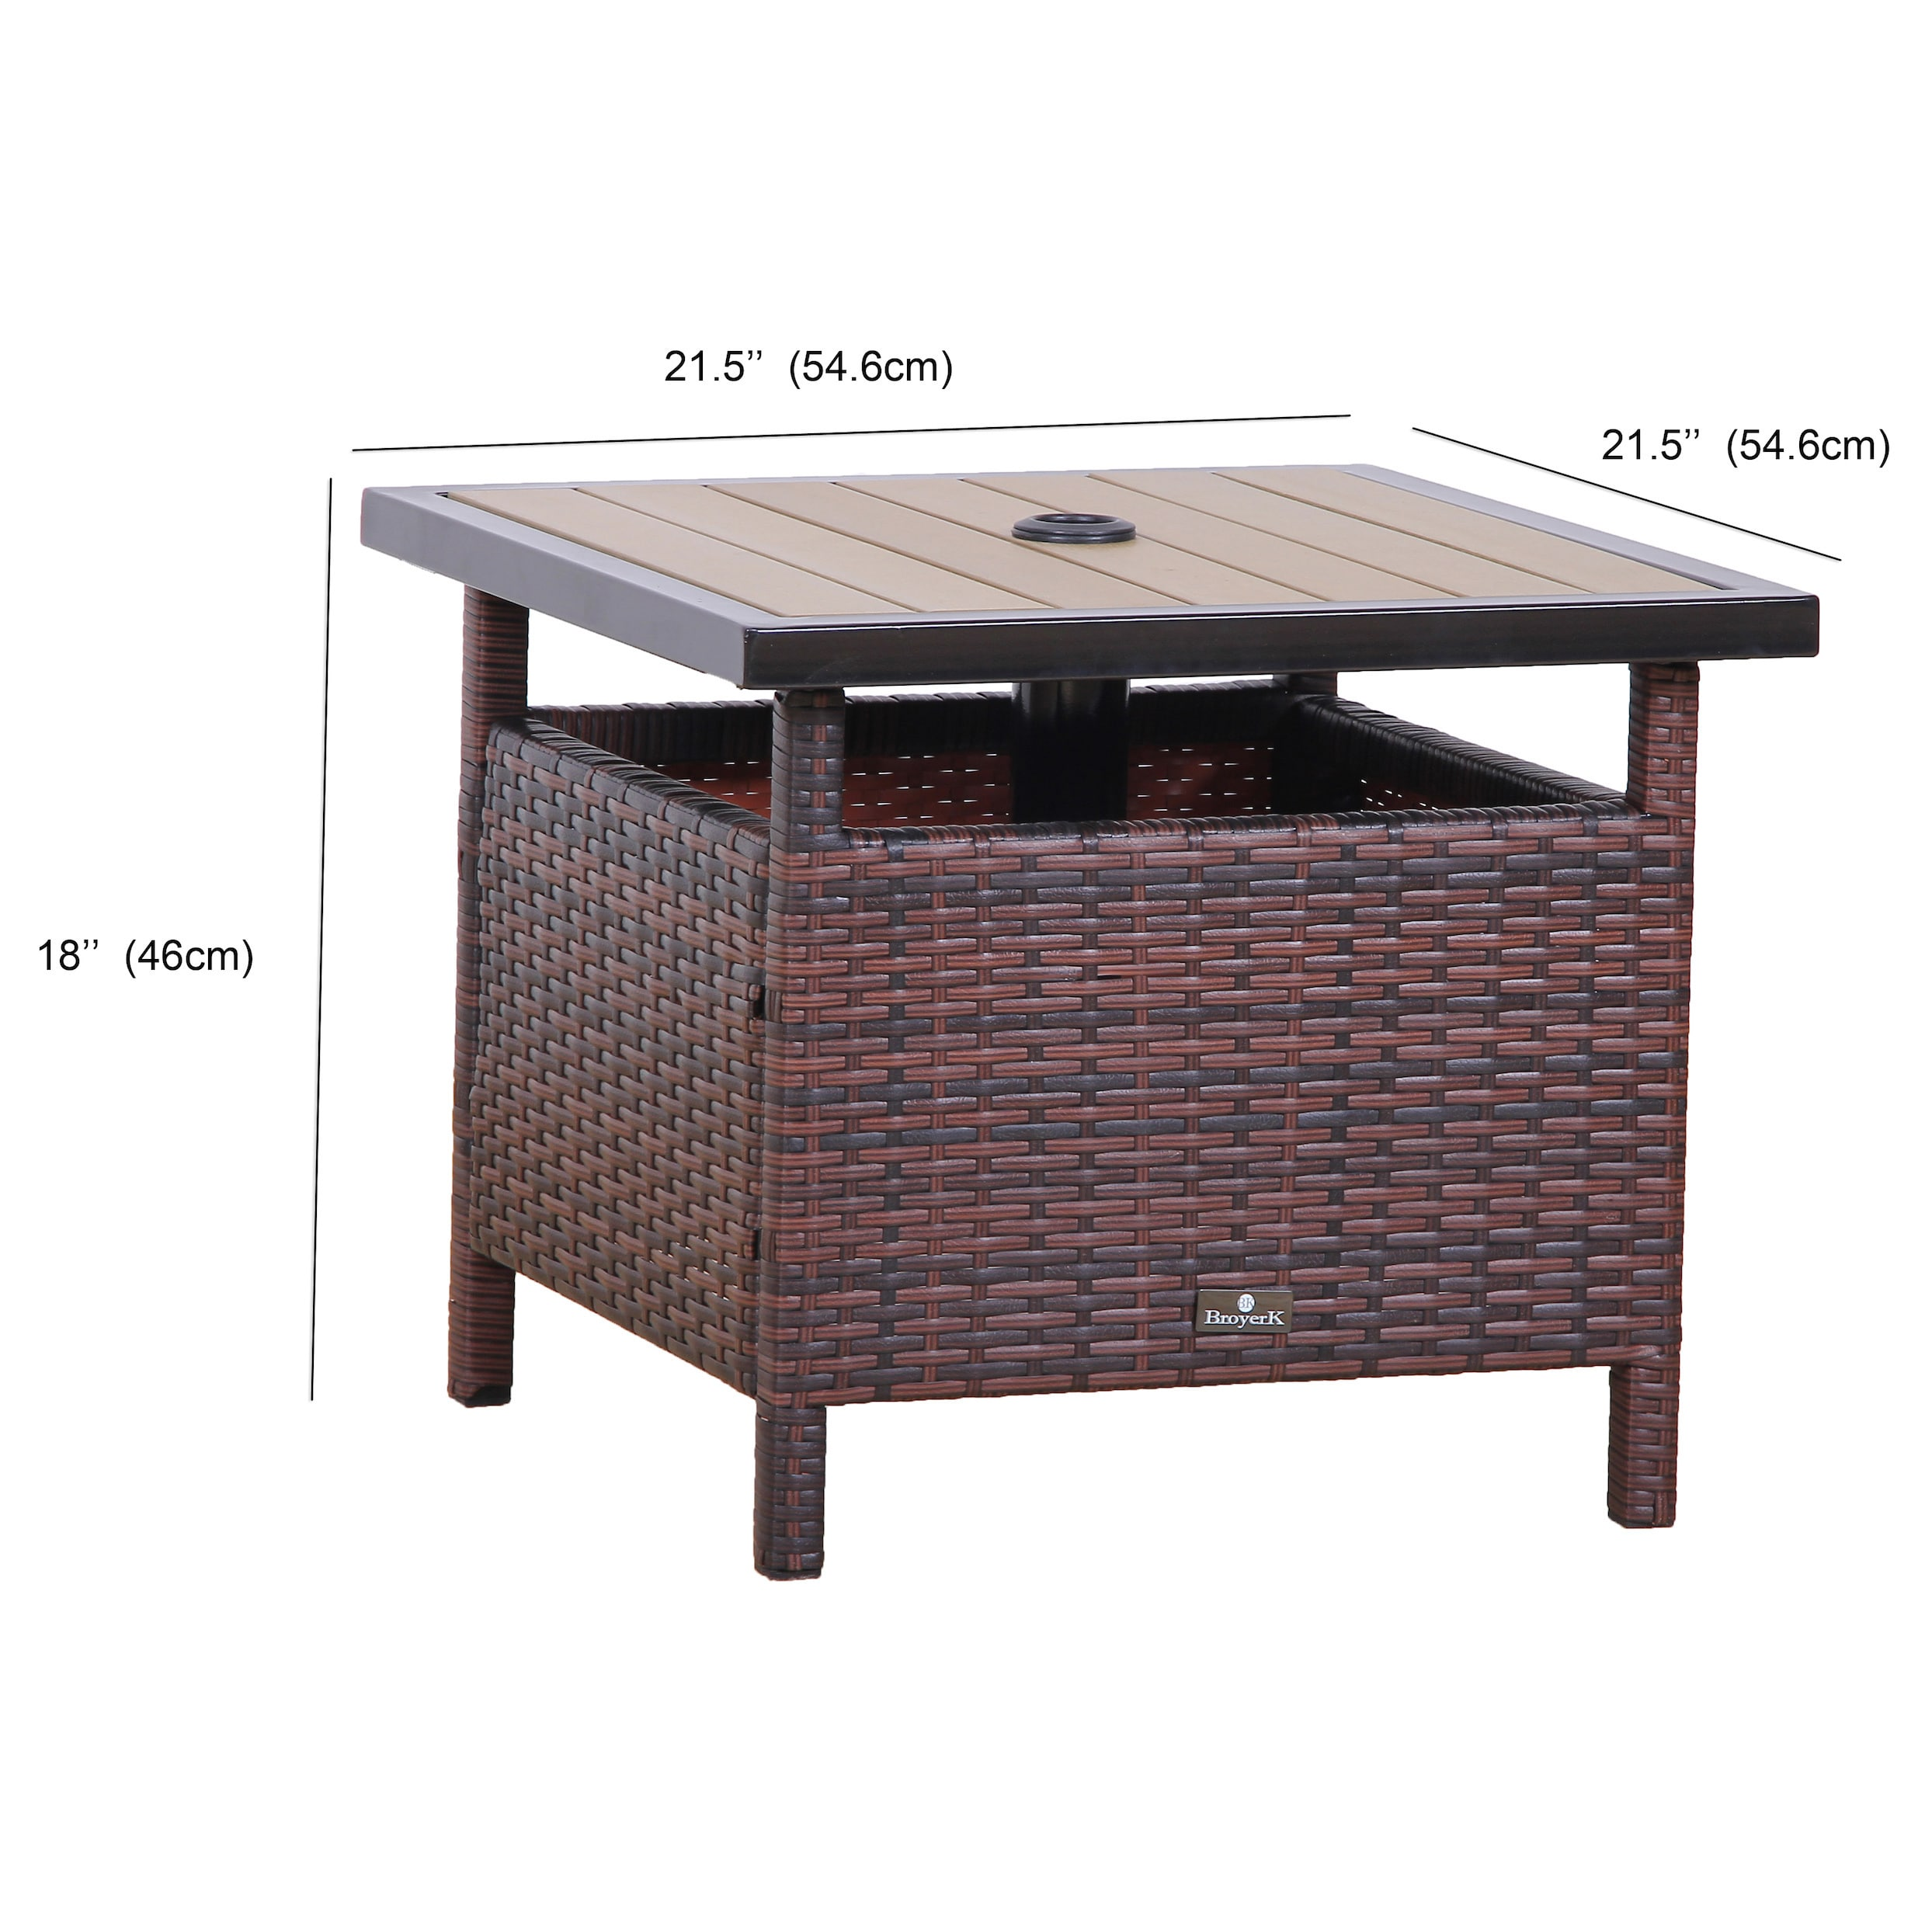 Broyerk Rattan Wood Patio Umbrella Stand Dining Table